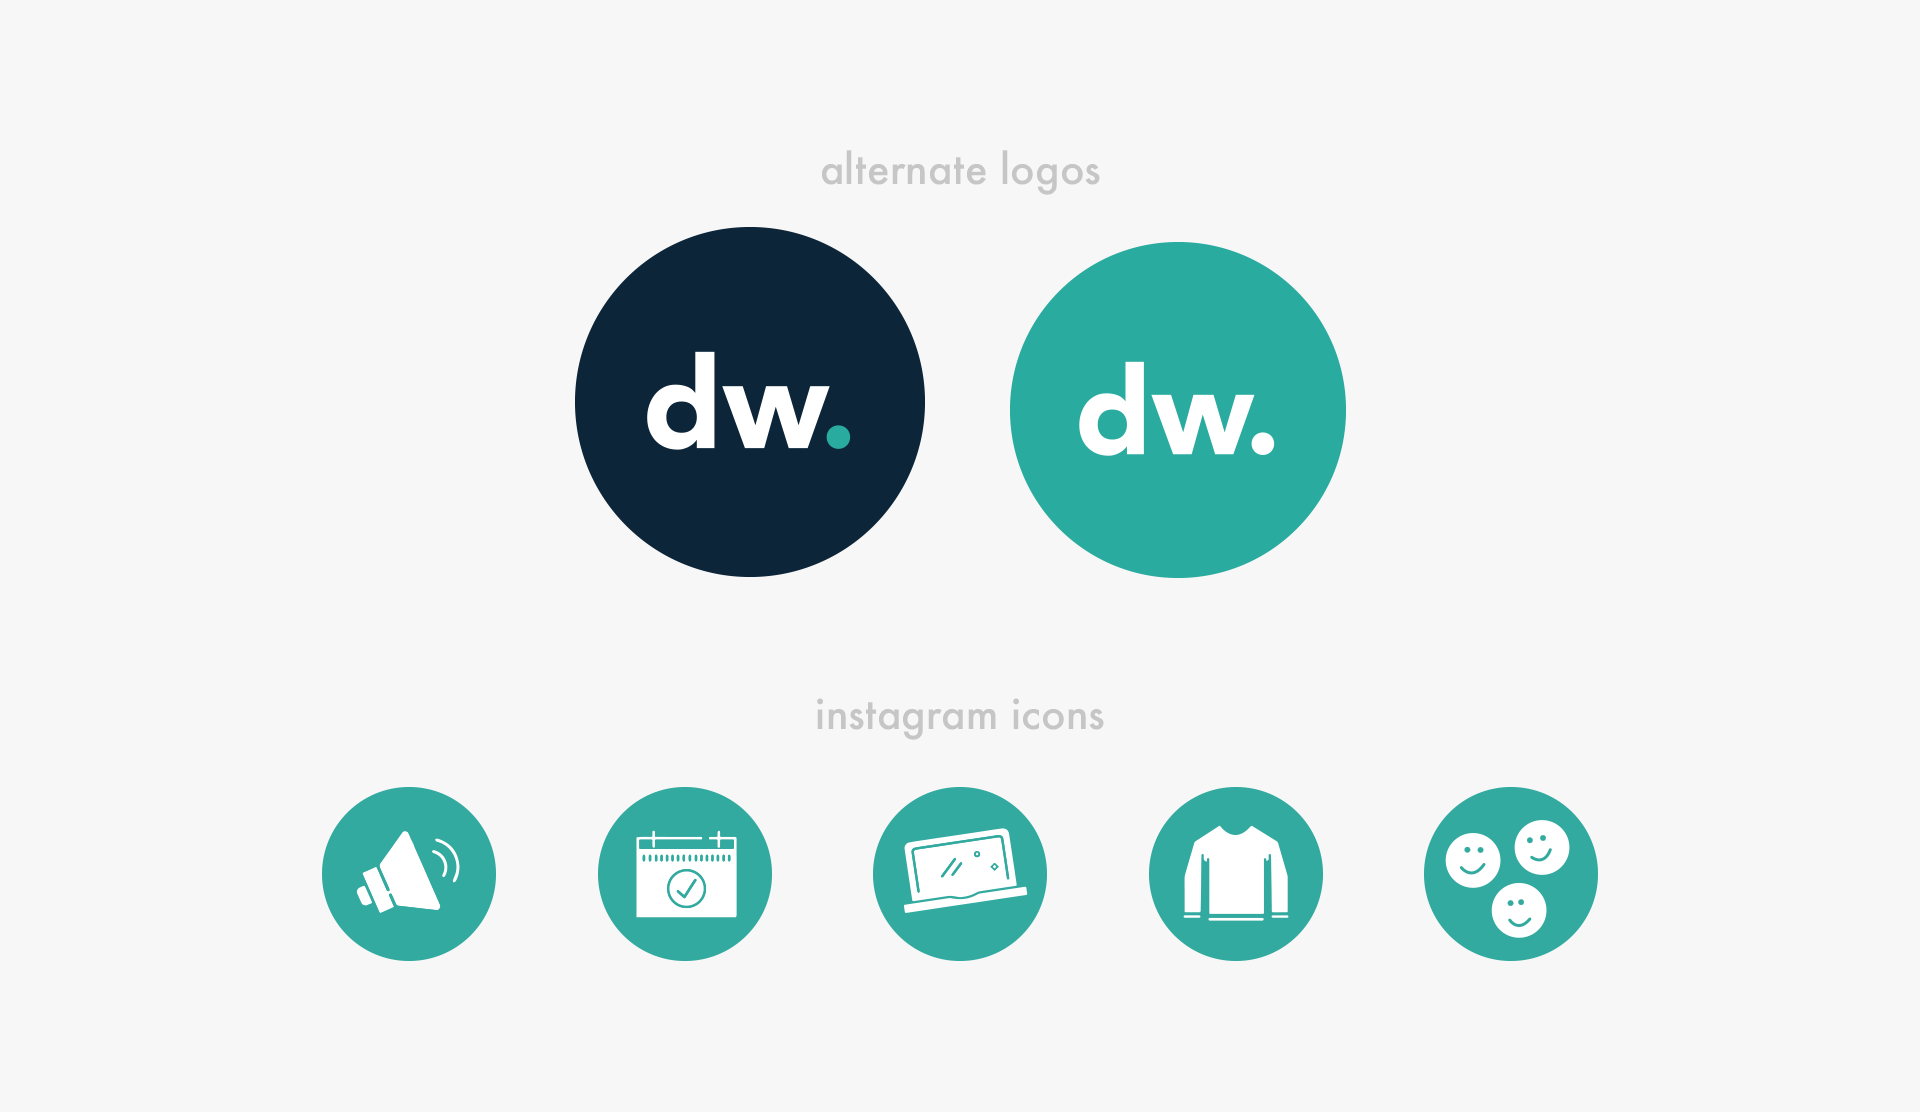 digital works logos and icons.png